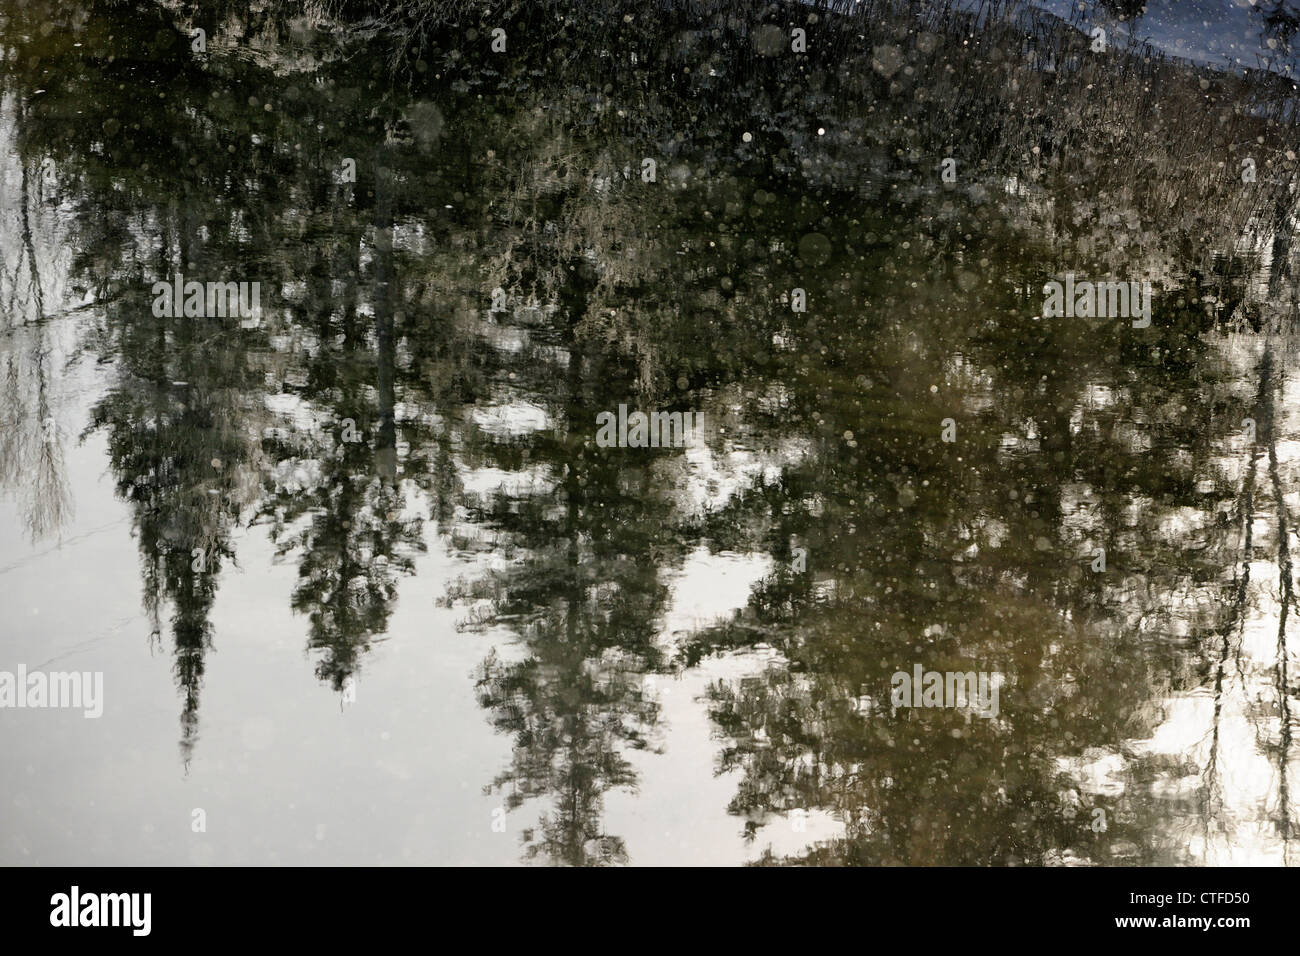 Tree reflections in open water of Junction Creek in winter, Greater Sudbury (Naughton), Ontario, Canada - Stock Image